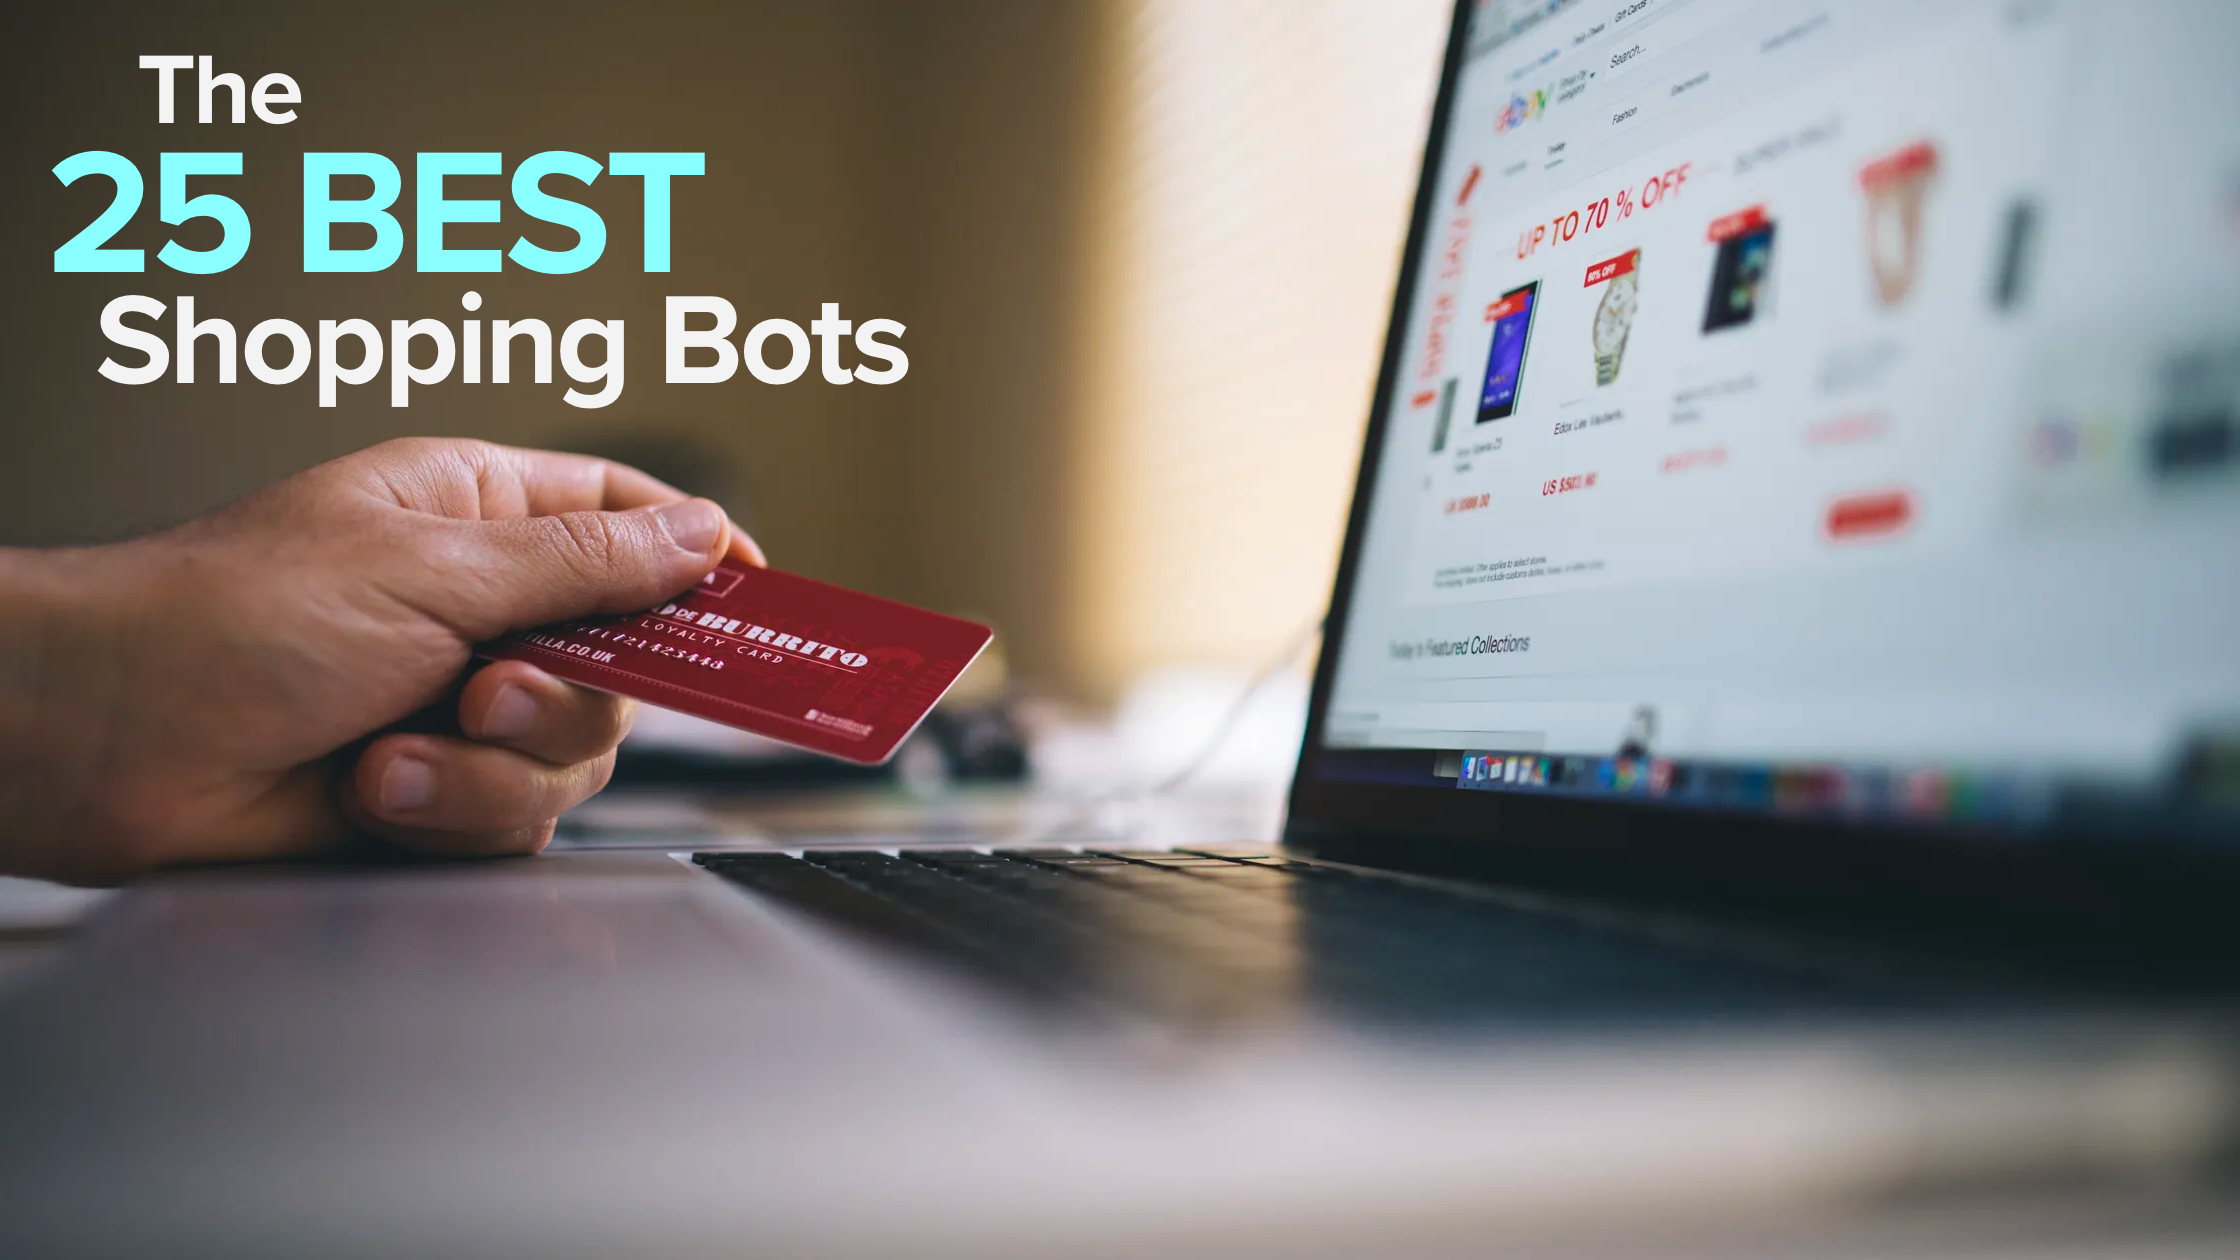 The 25 Best Shopping Bots